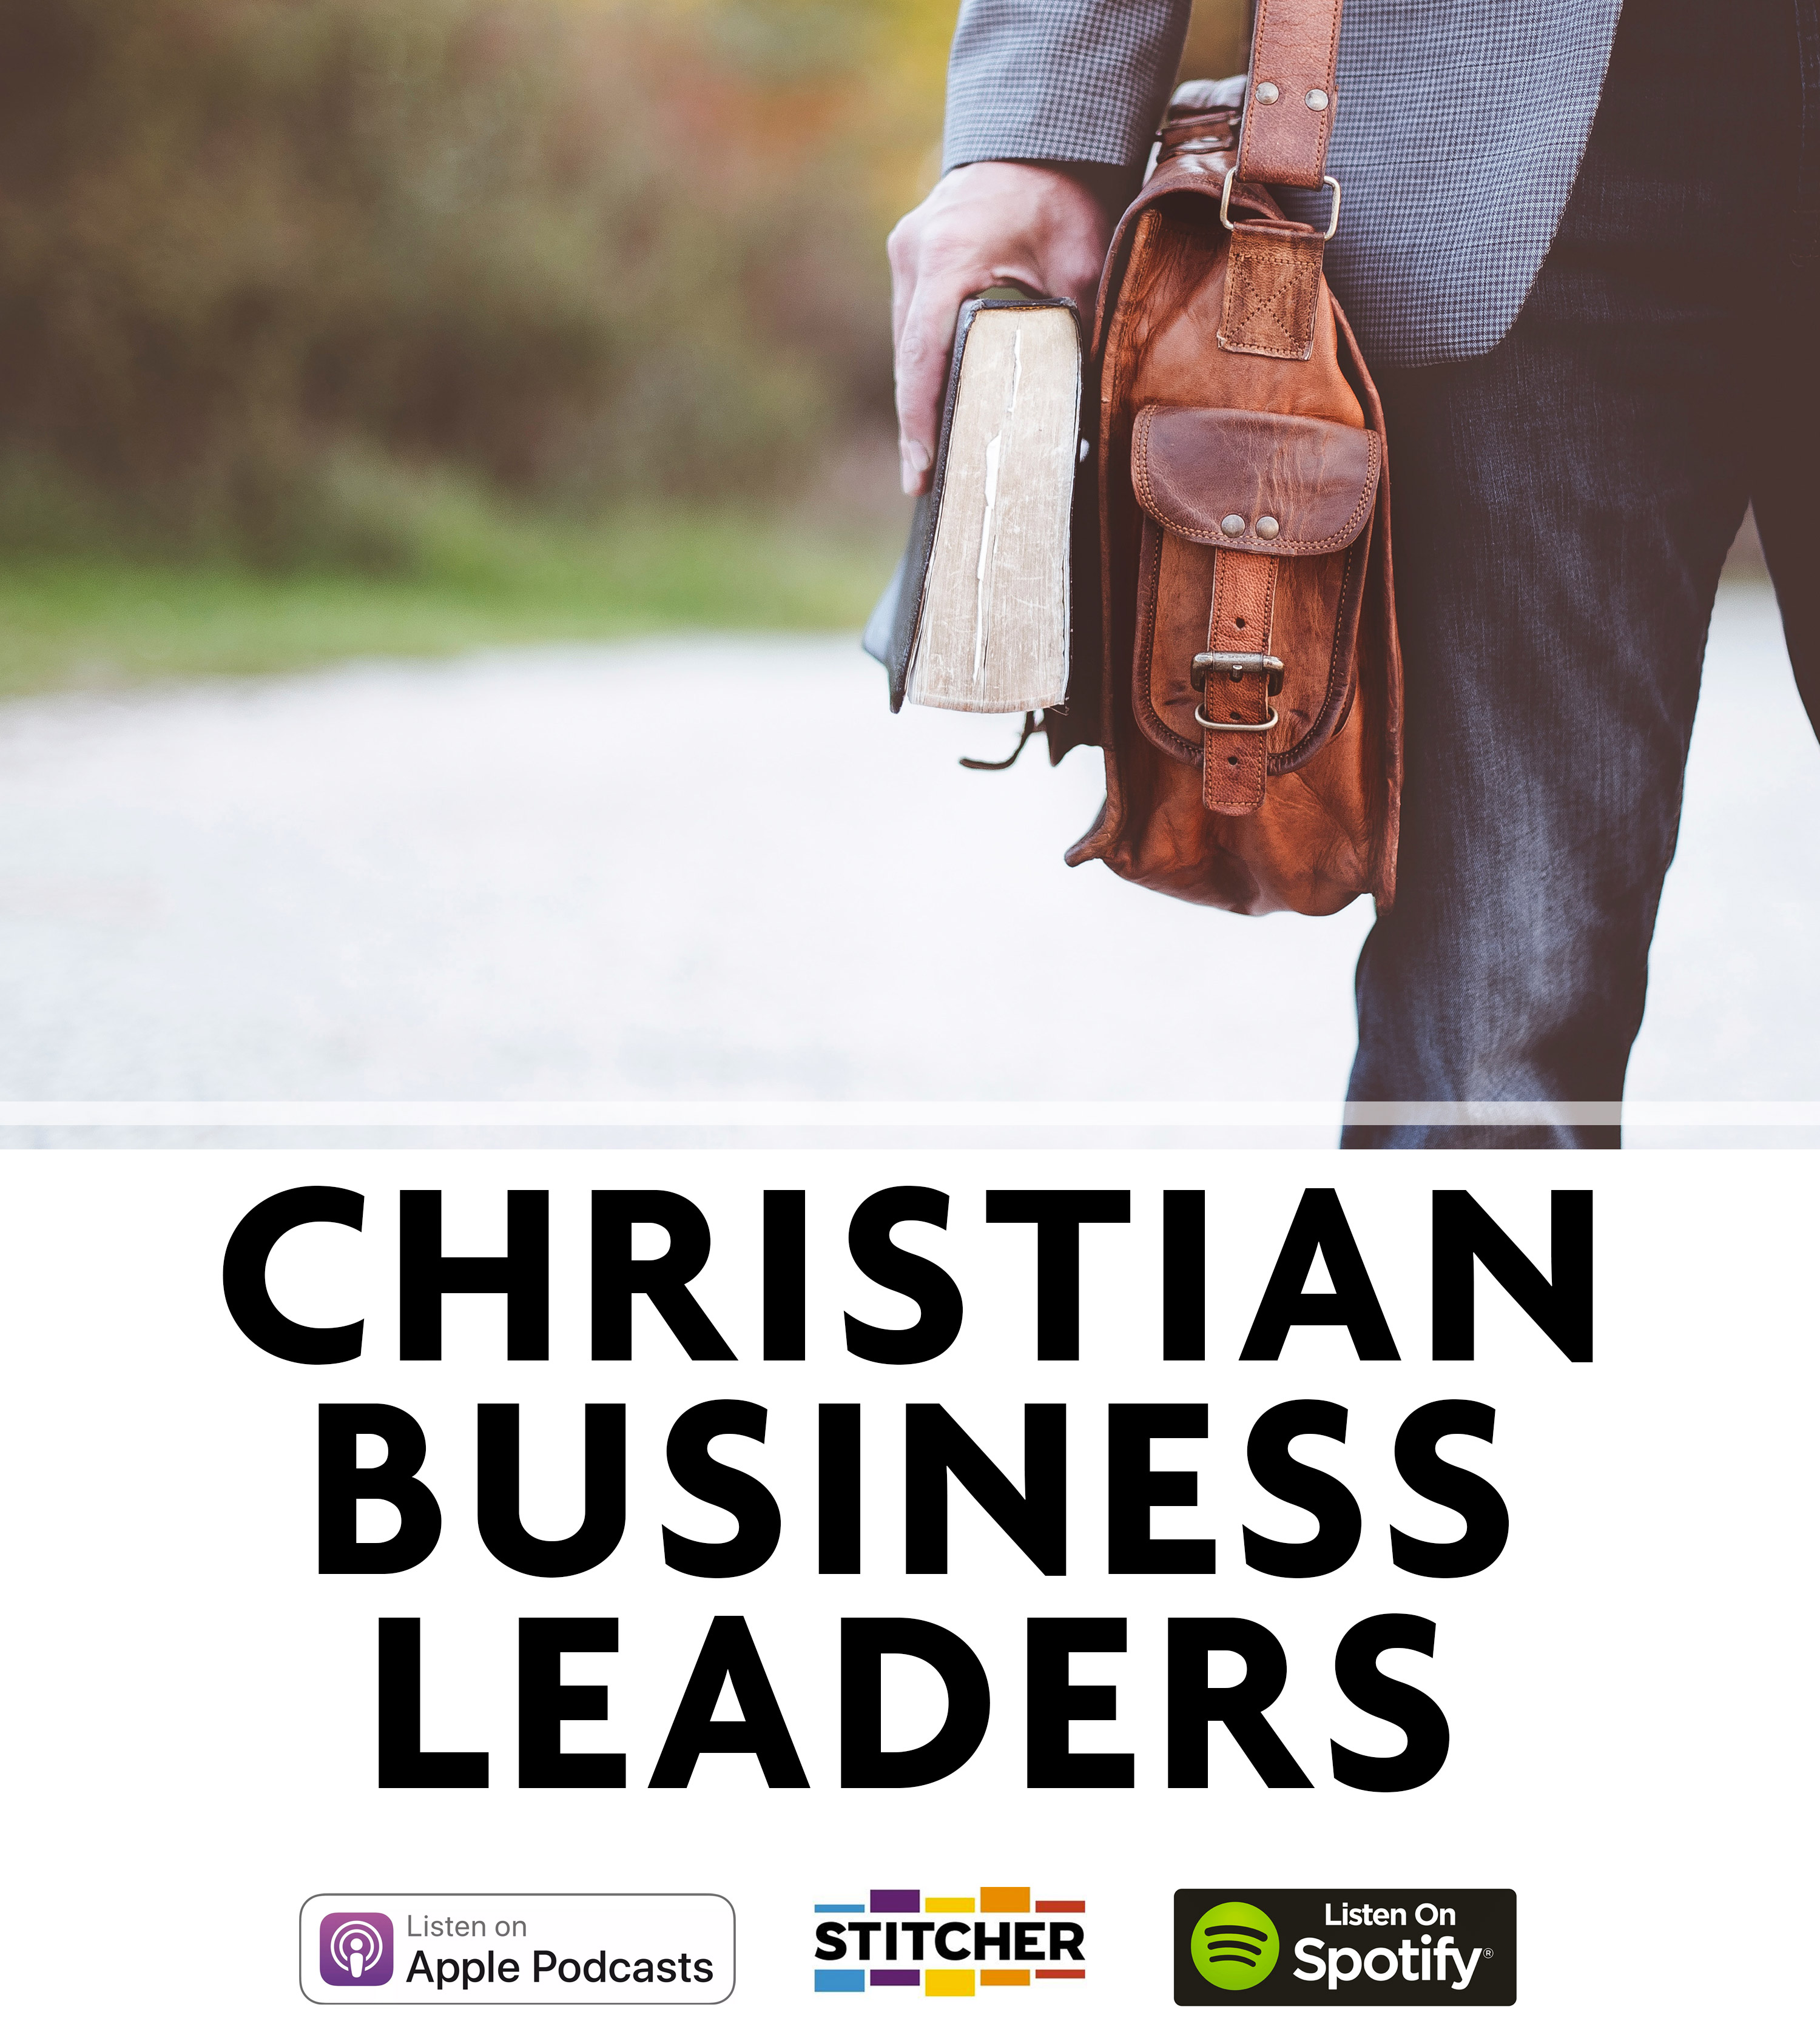 Christian business Leaders Podcast